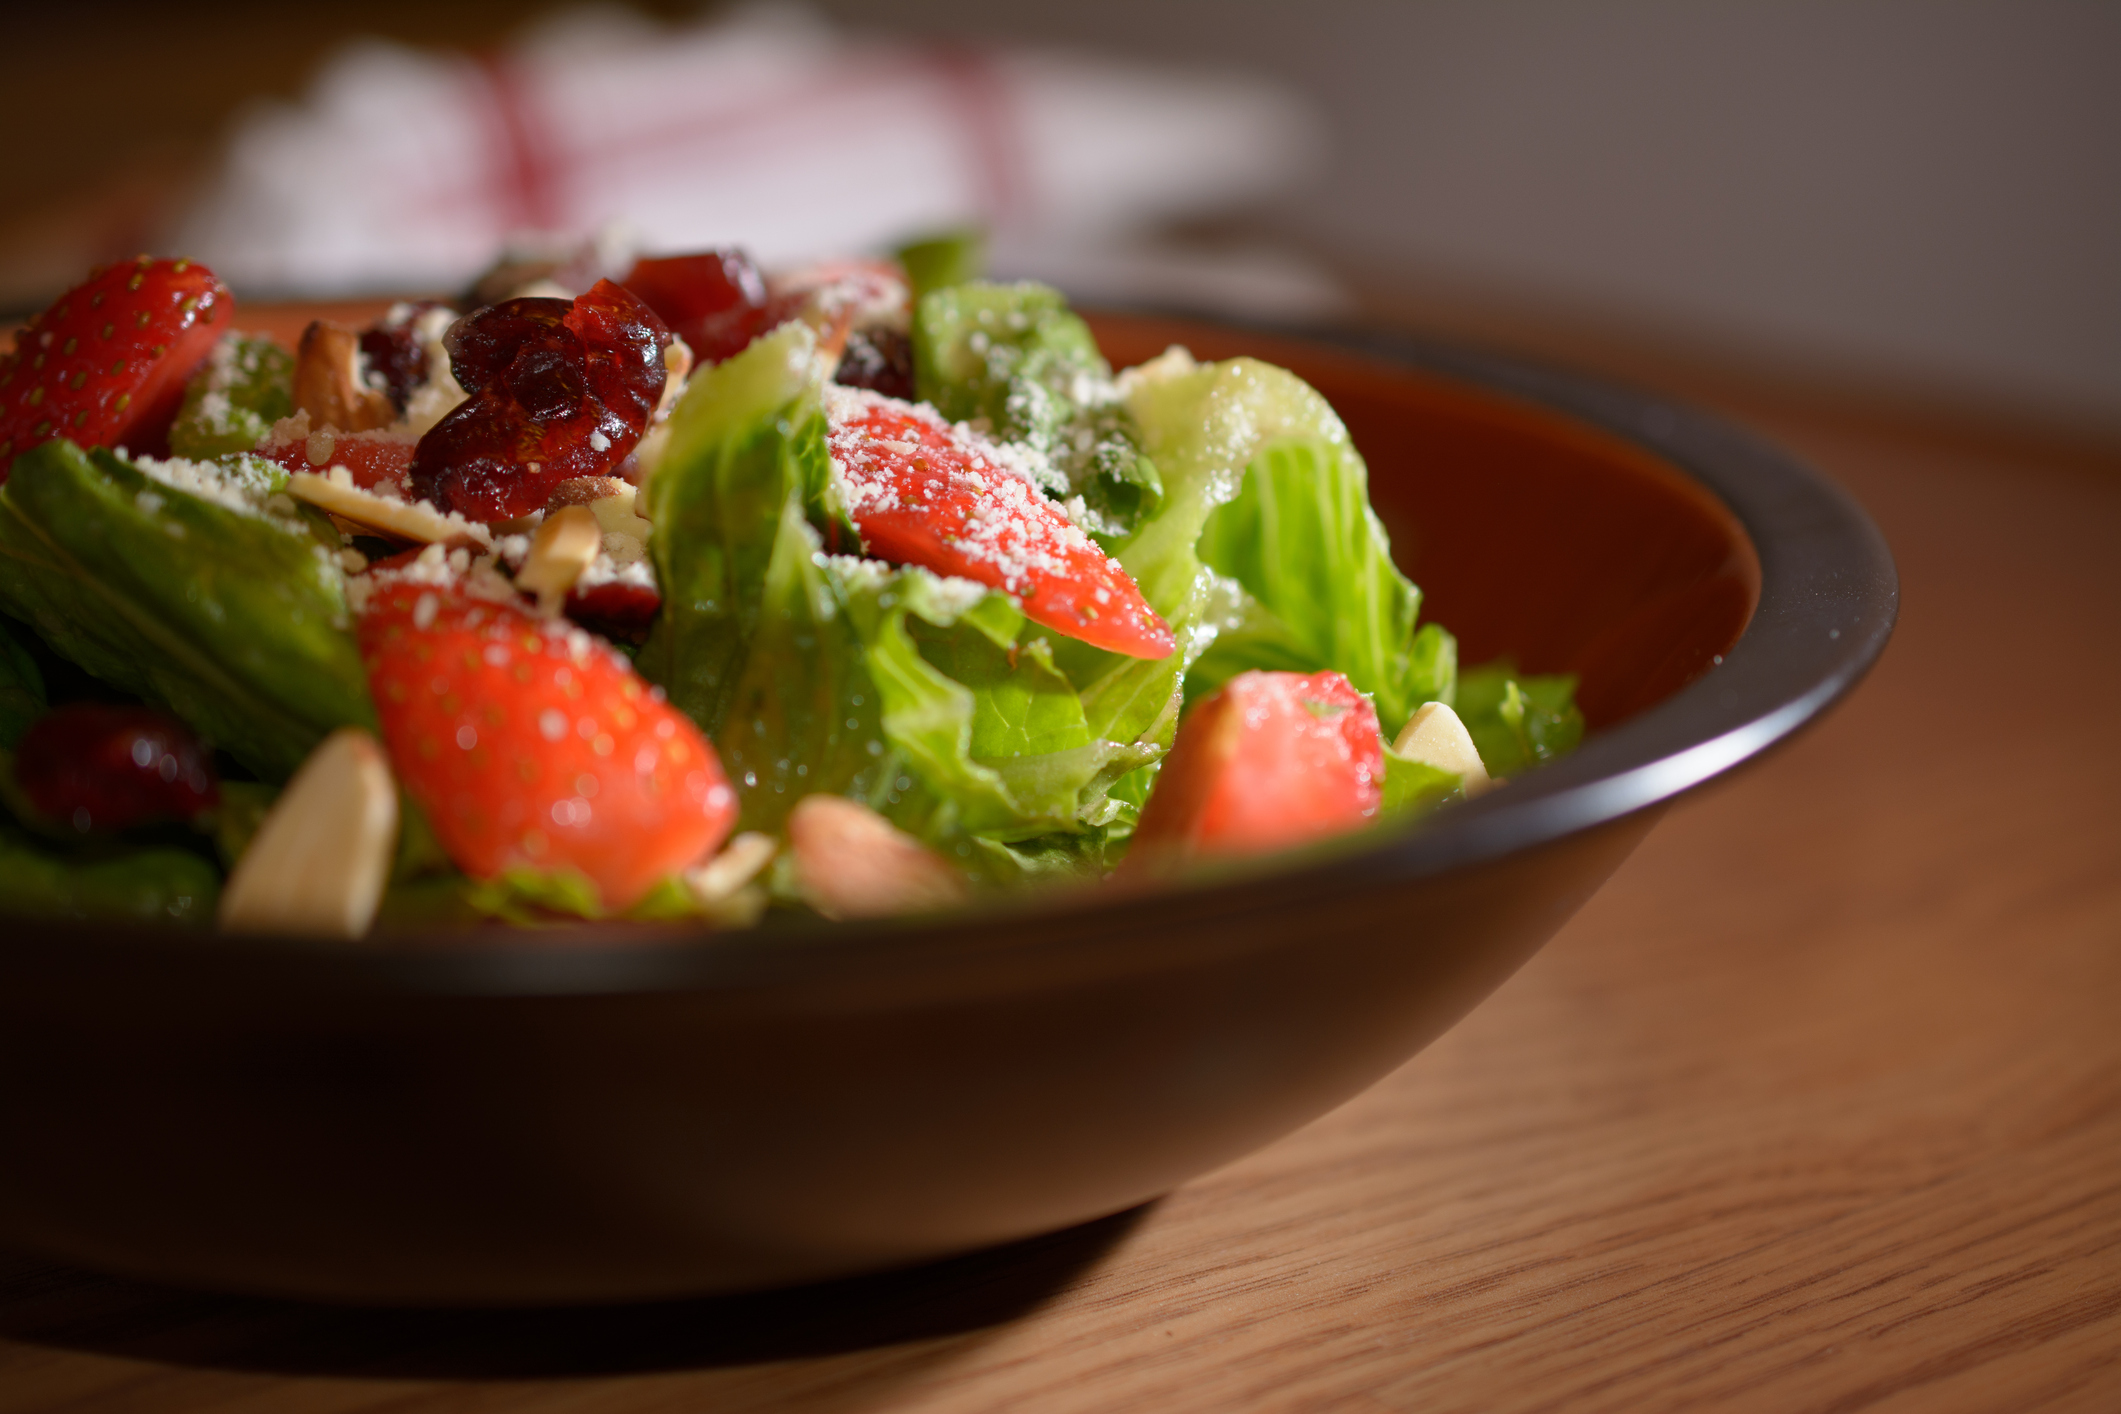 strawberry romaine salad - with NutraPonics romaine lettuce